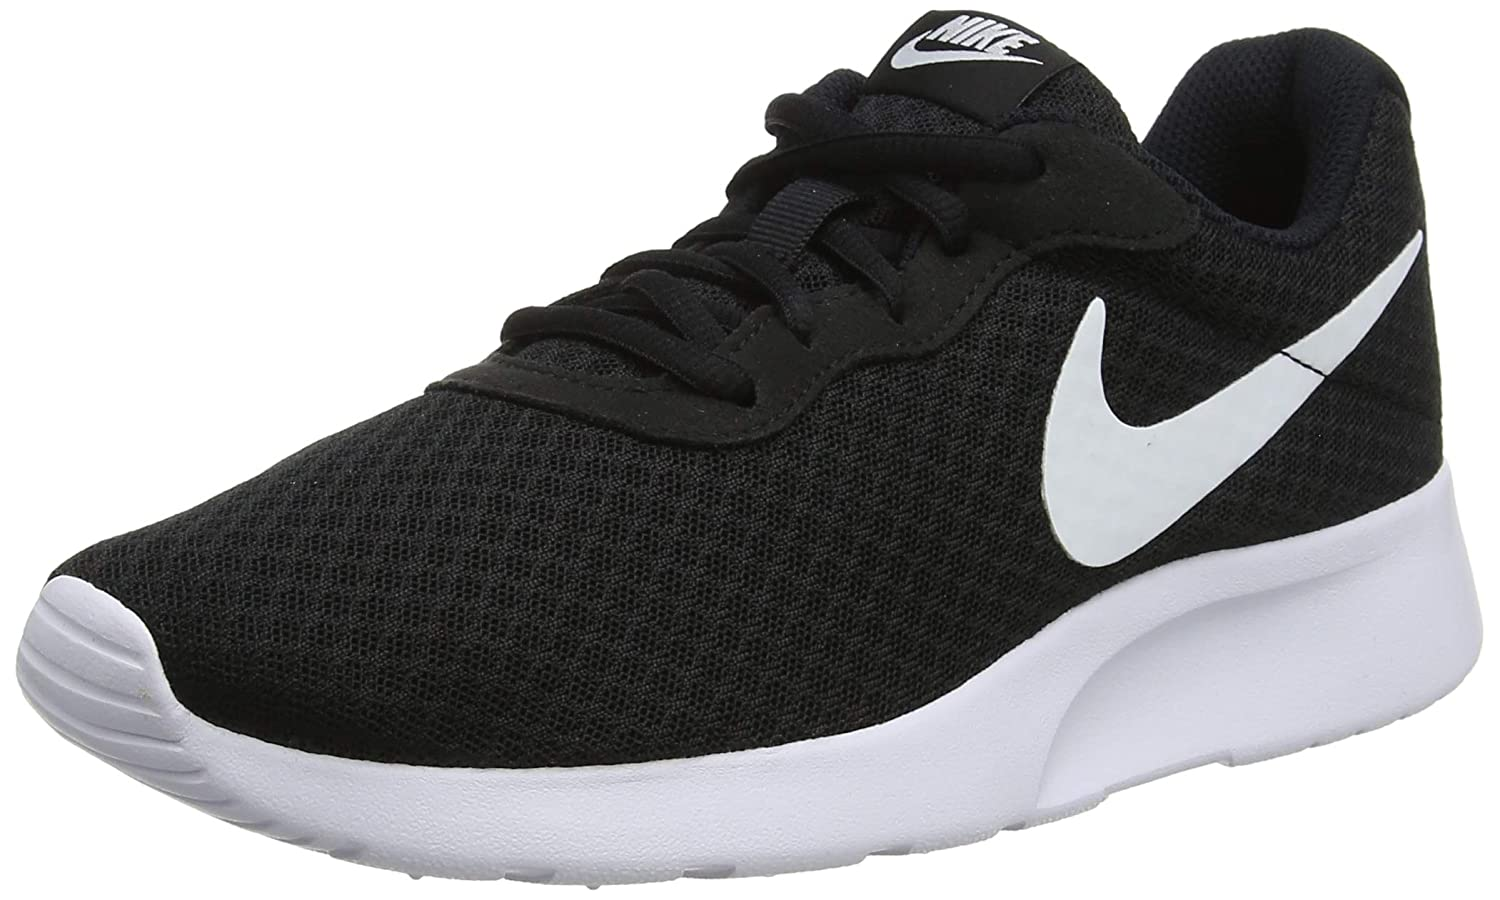 online store 6281a e5004 Amazon.com | NIKE Women's Tanjun Running Shoes | Fashion Sneakers